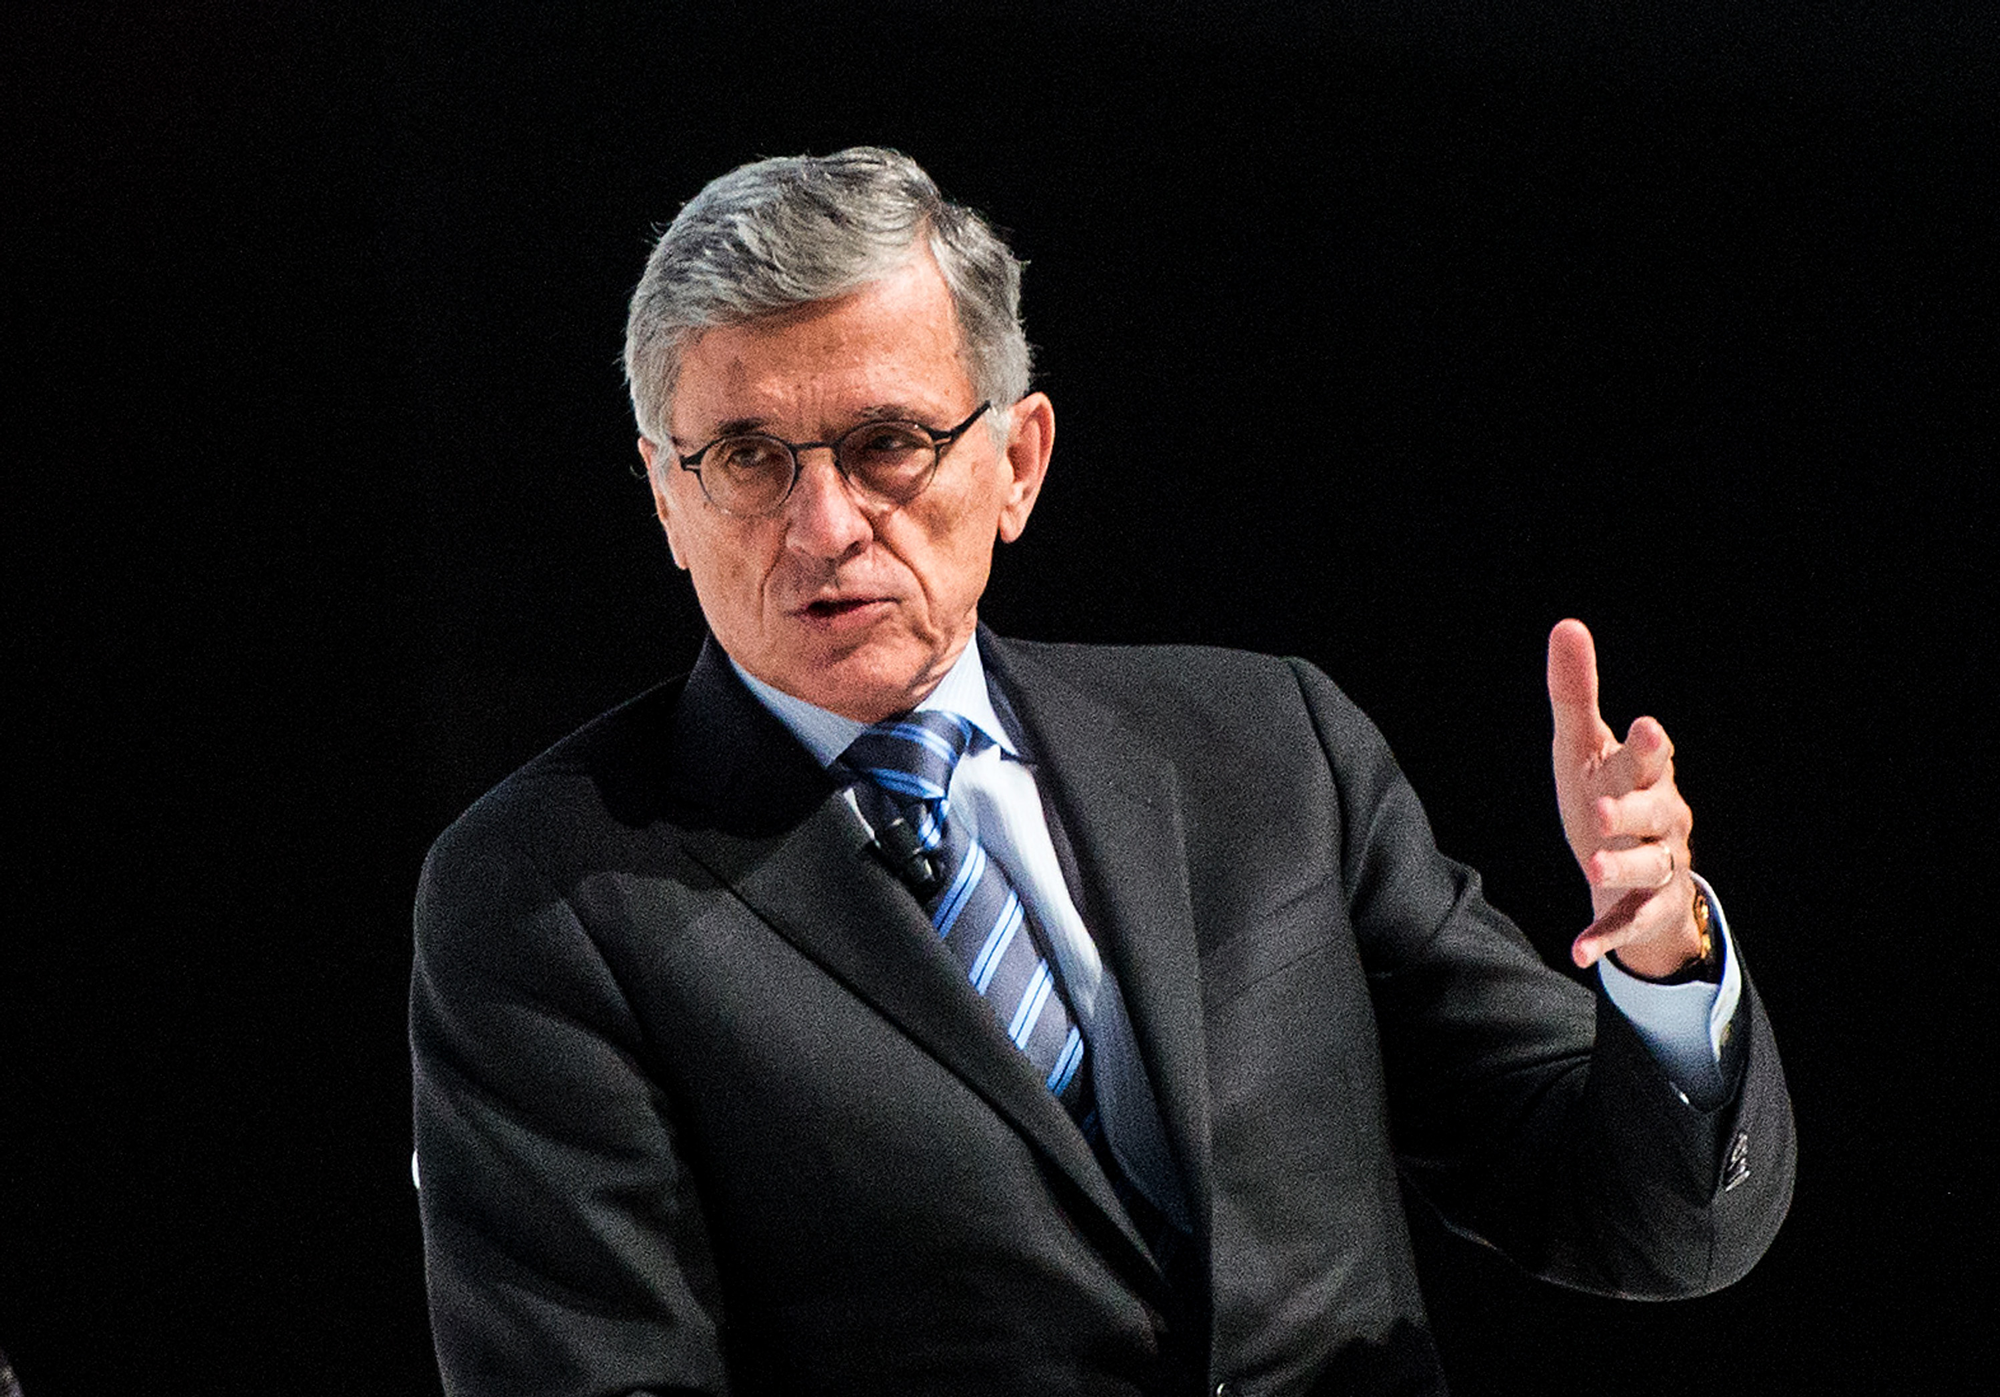 Federal Communications Commission chairman Tom Wheeler